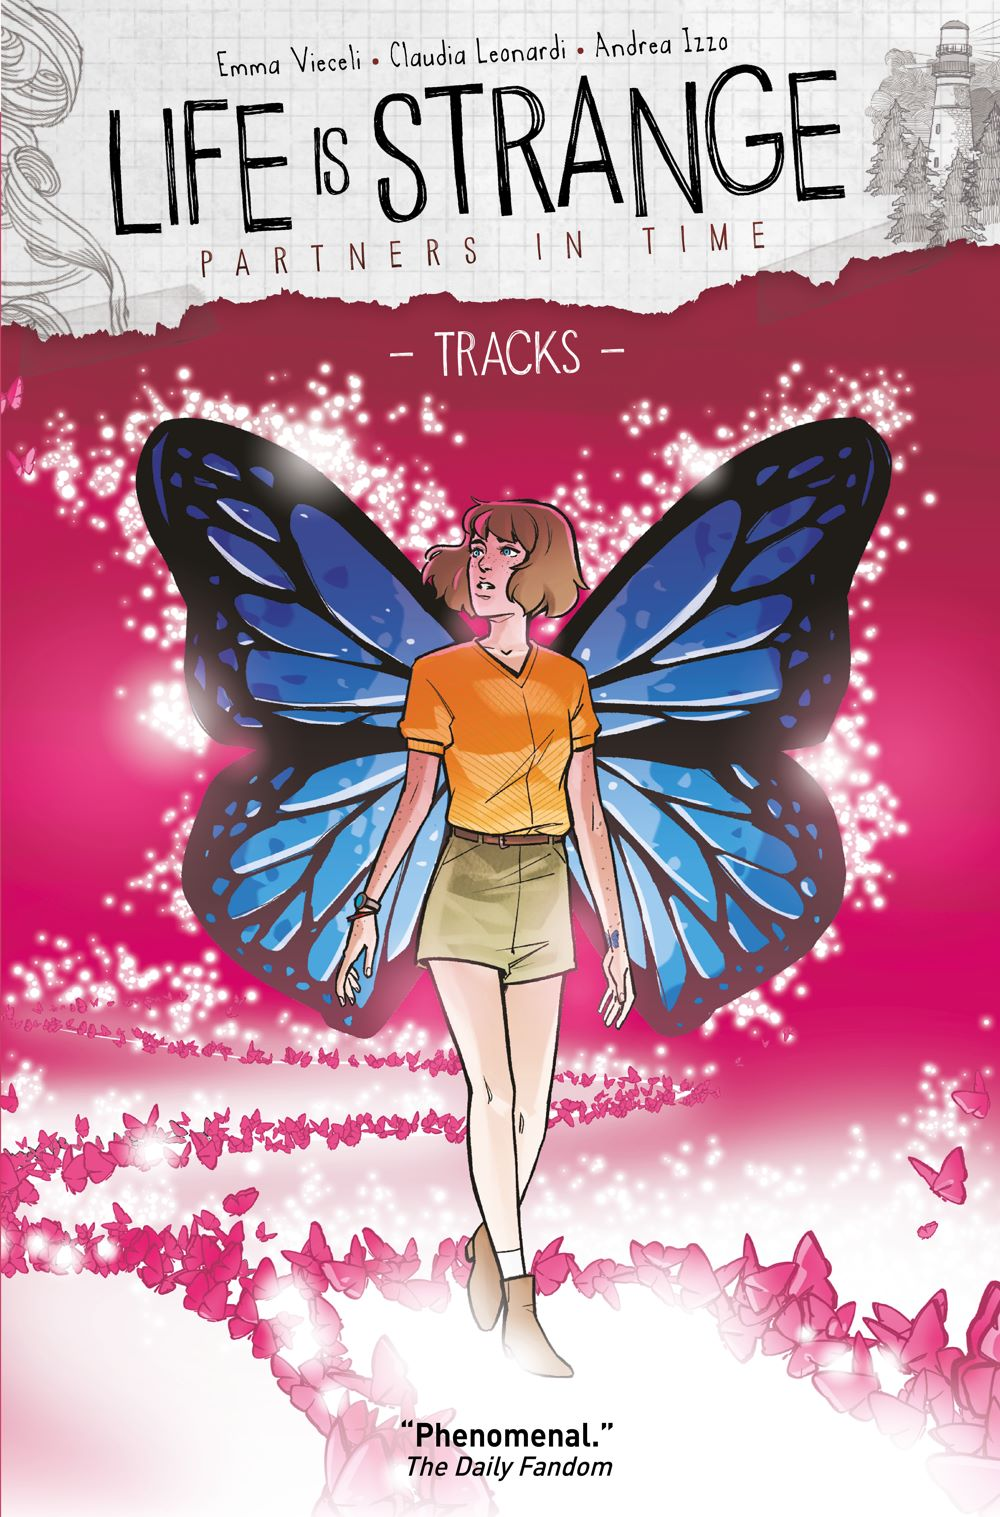 9781787734739 ComicList Previews: LIFE IS STRANGE VOLUME 4 PARTNERS IN TIME TRACKS TP